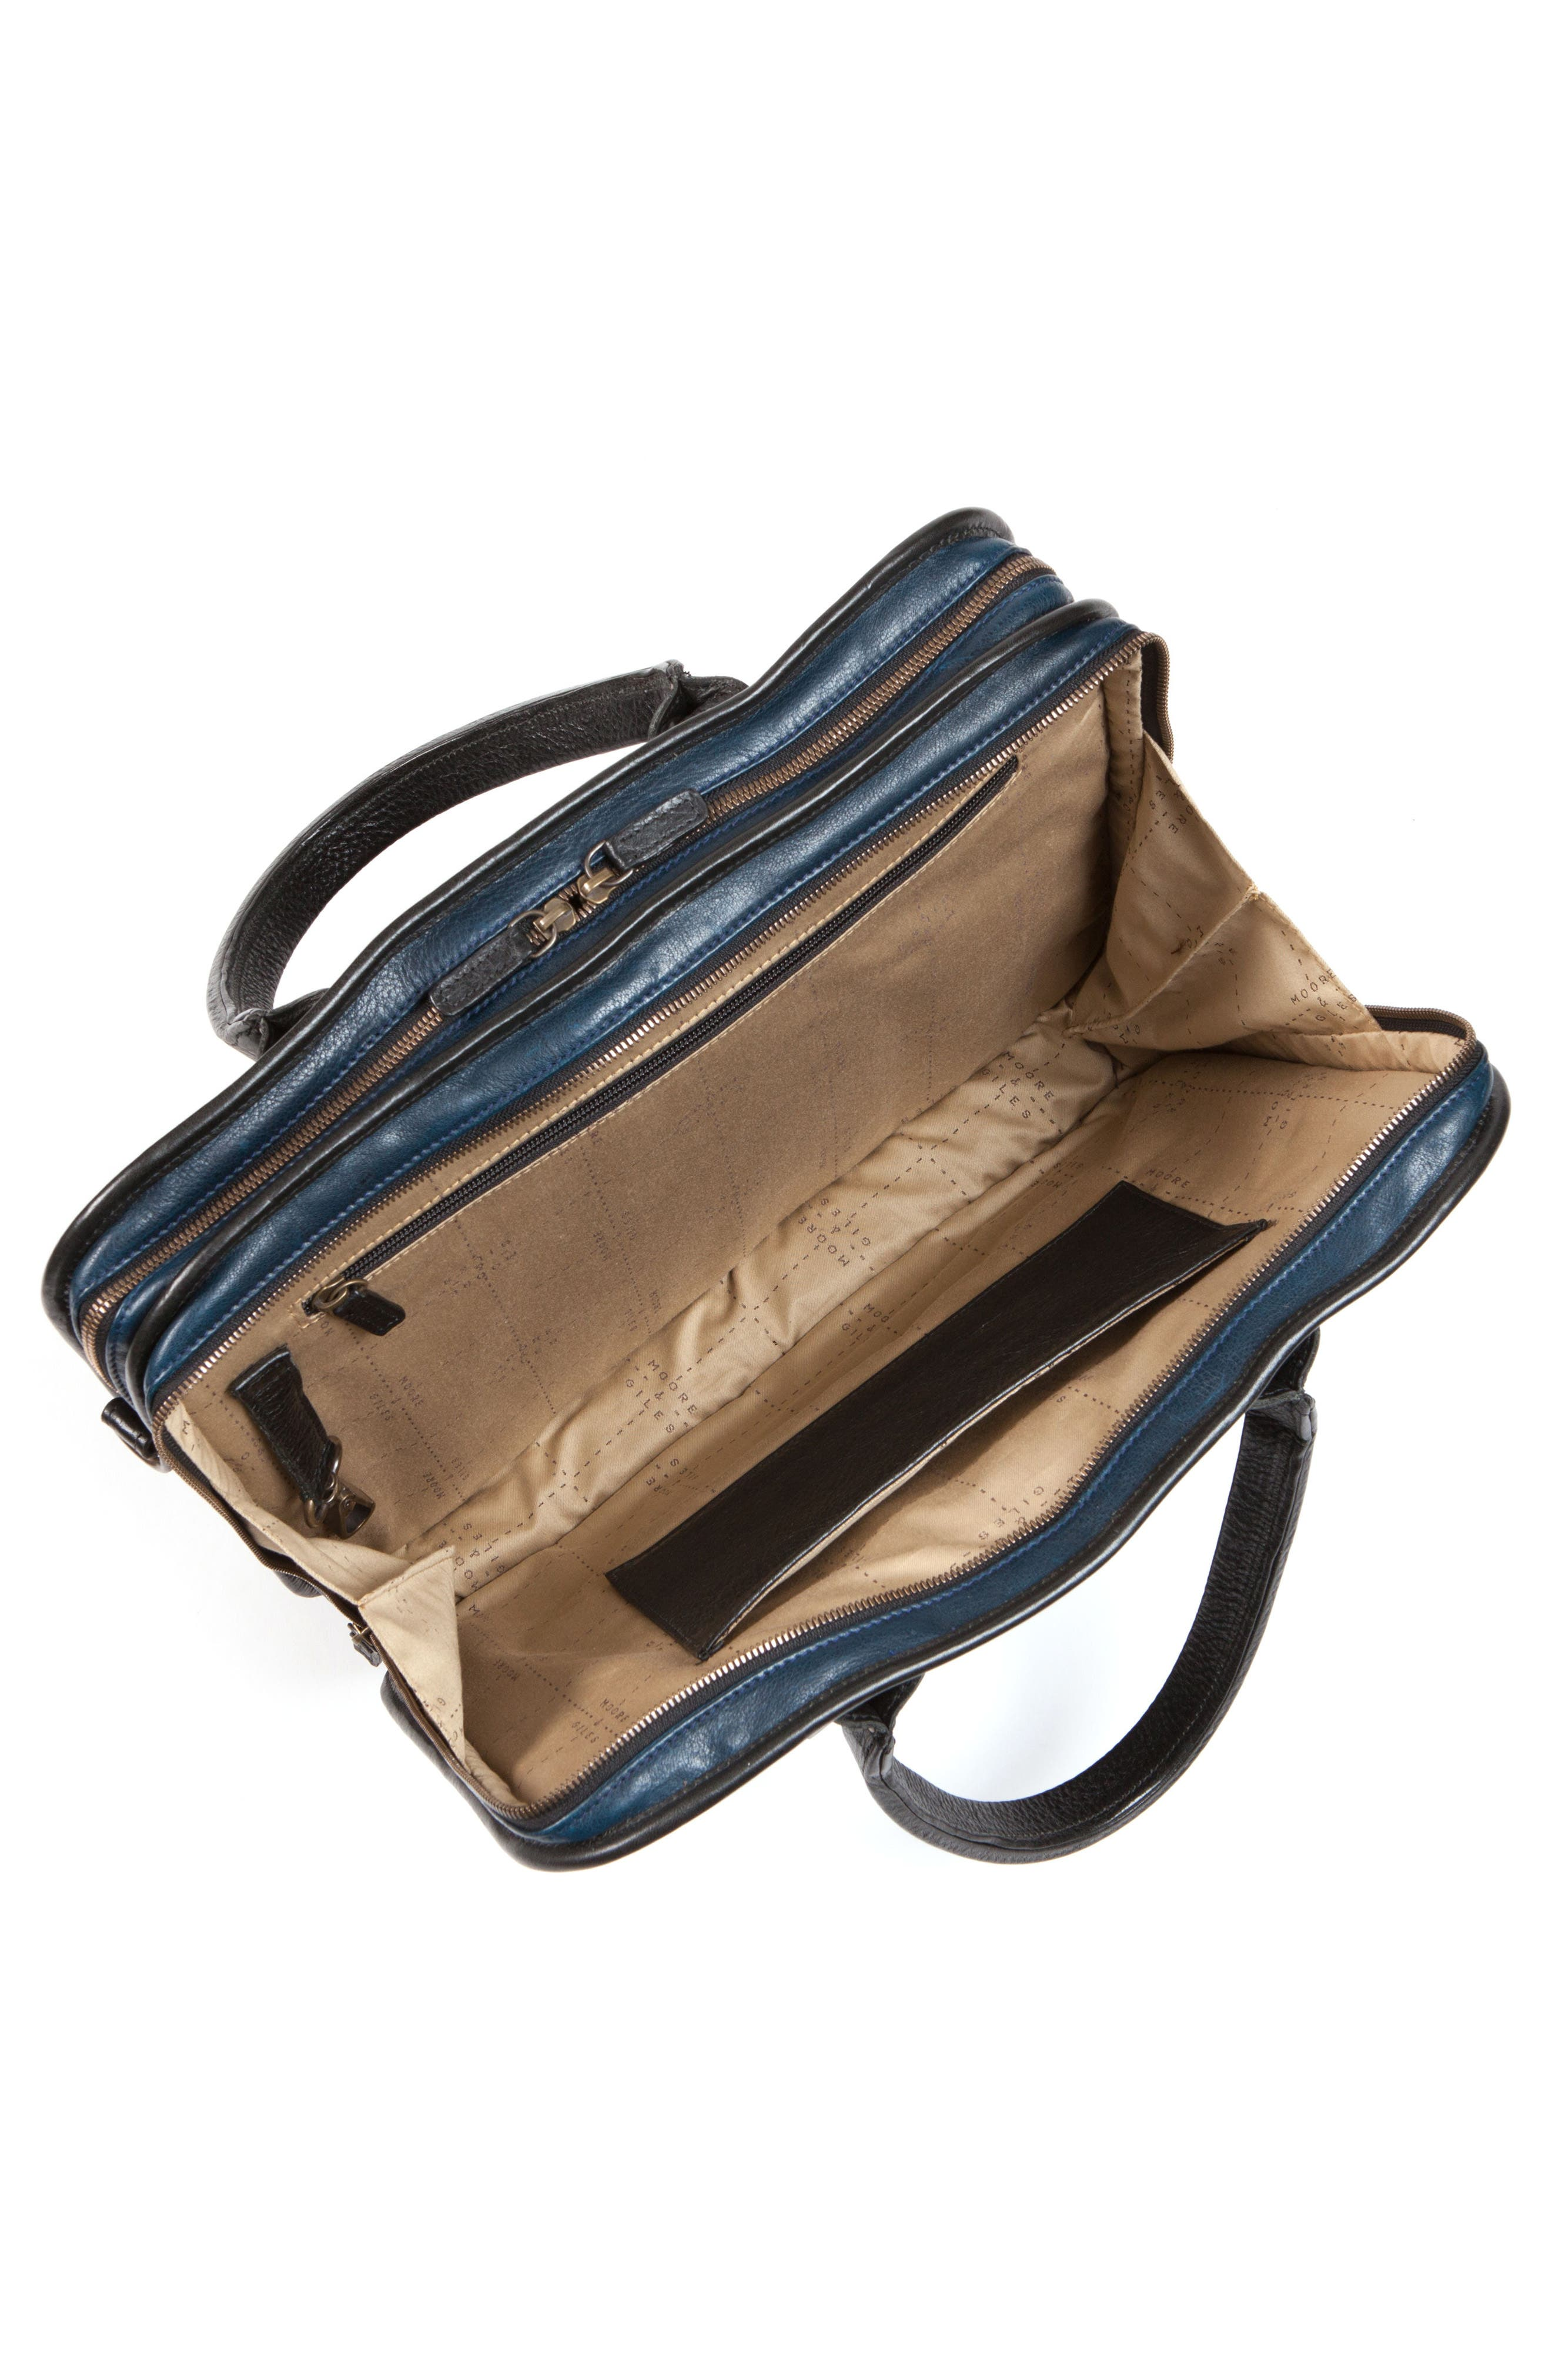 Miller Leather Briefcase,                             Alternate thumbnail 5, color,                             Titan Milled Navy And Gunmetal